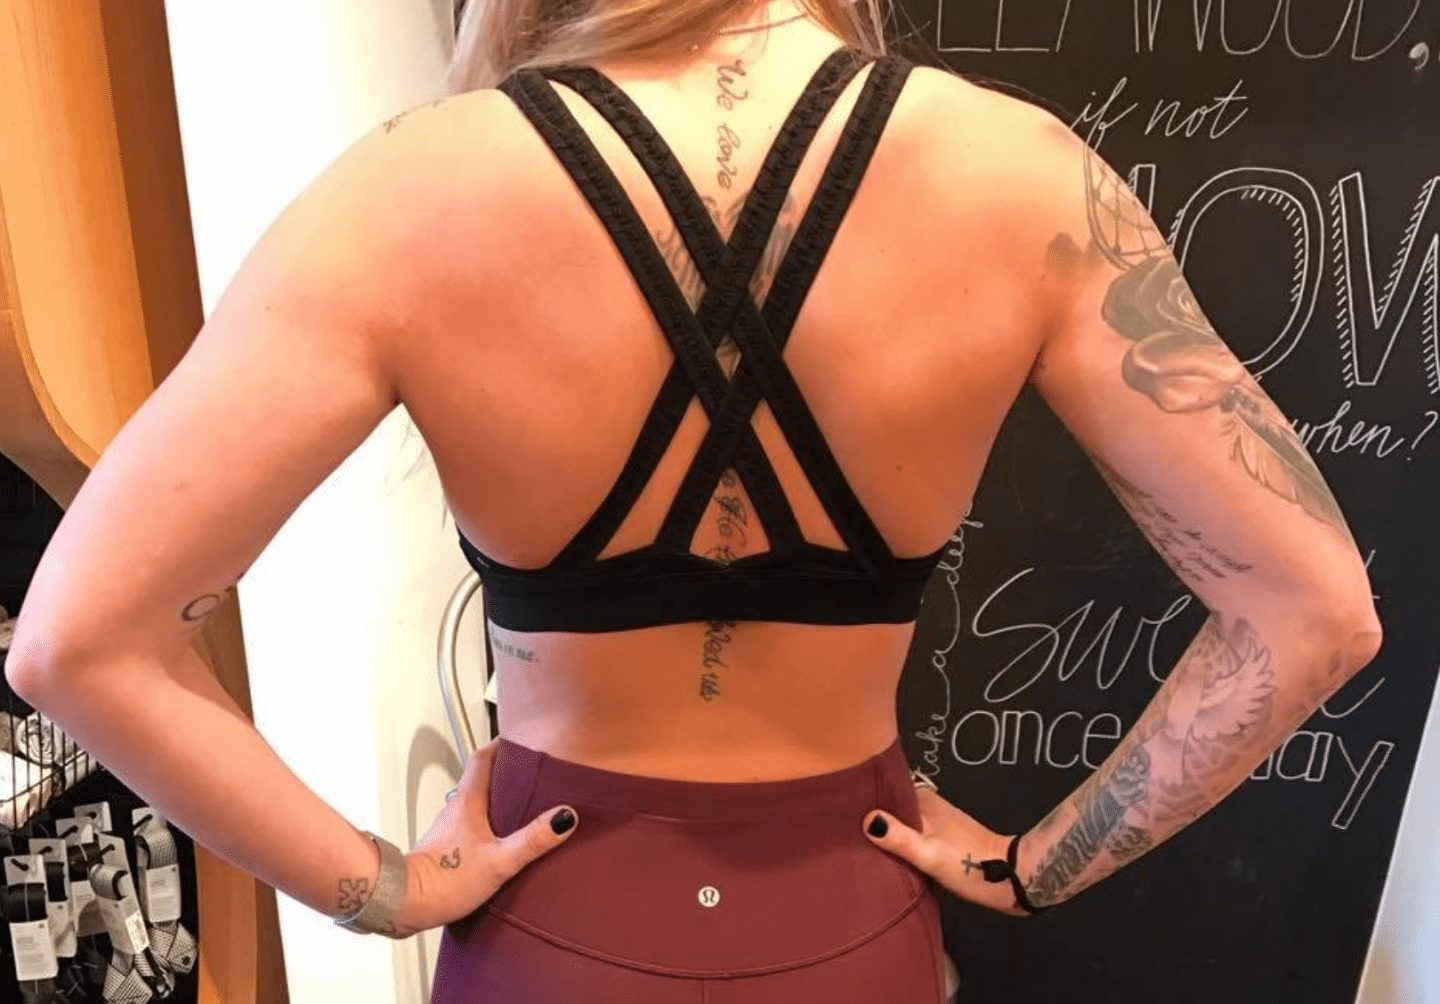 Energy Bra Braided, Play Off The Pleats Tight